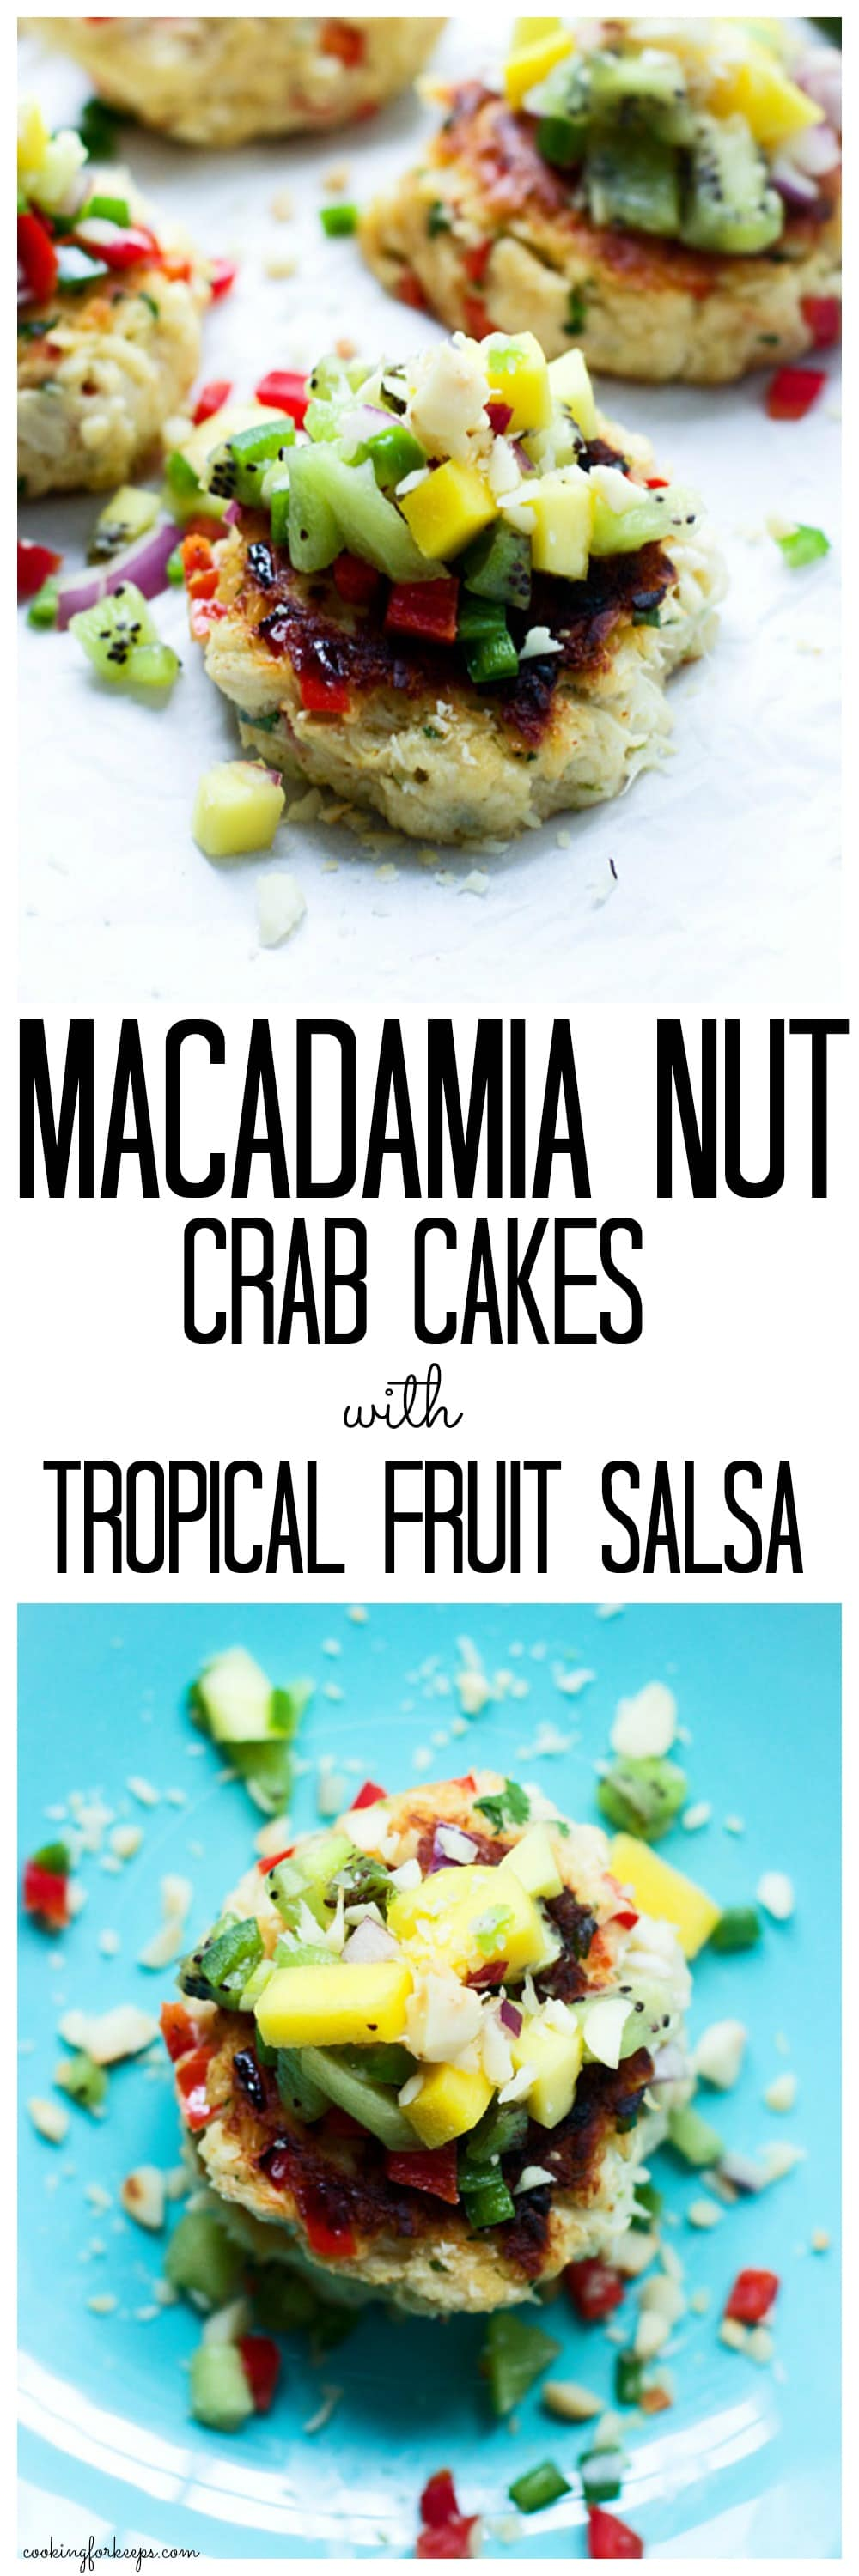 Macadamia Nut Crab Cakes with Tropical Fruit Salsa Collage